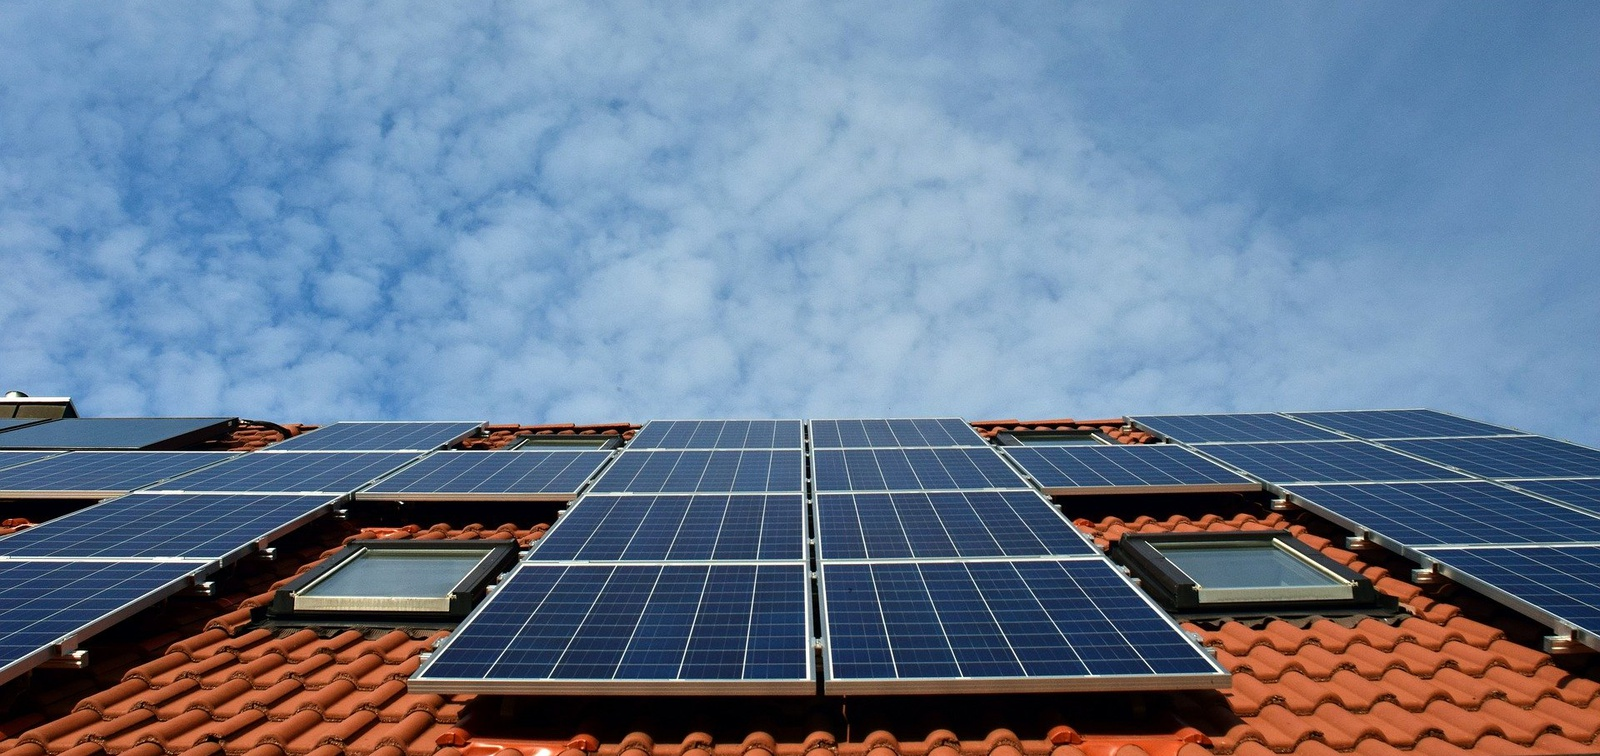 New Tesla program aims to cut costs, sell solar like a household appliance